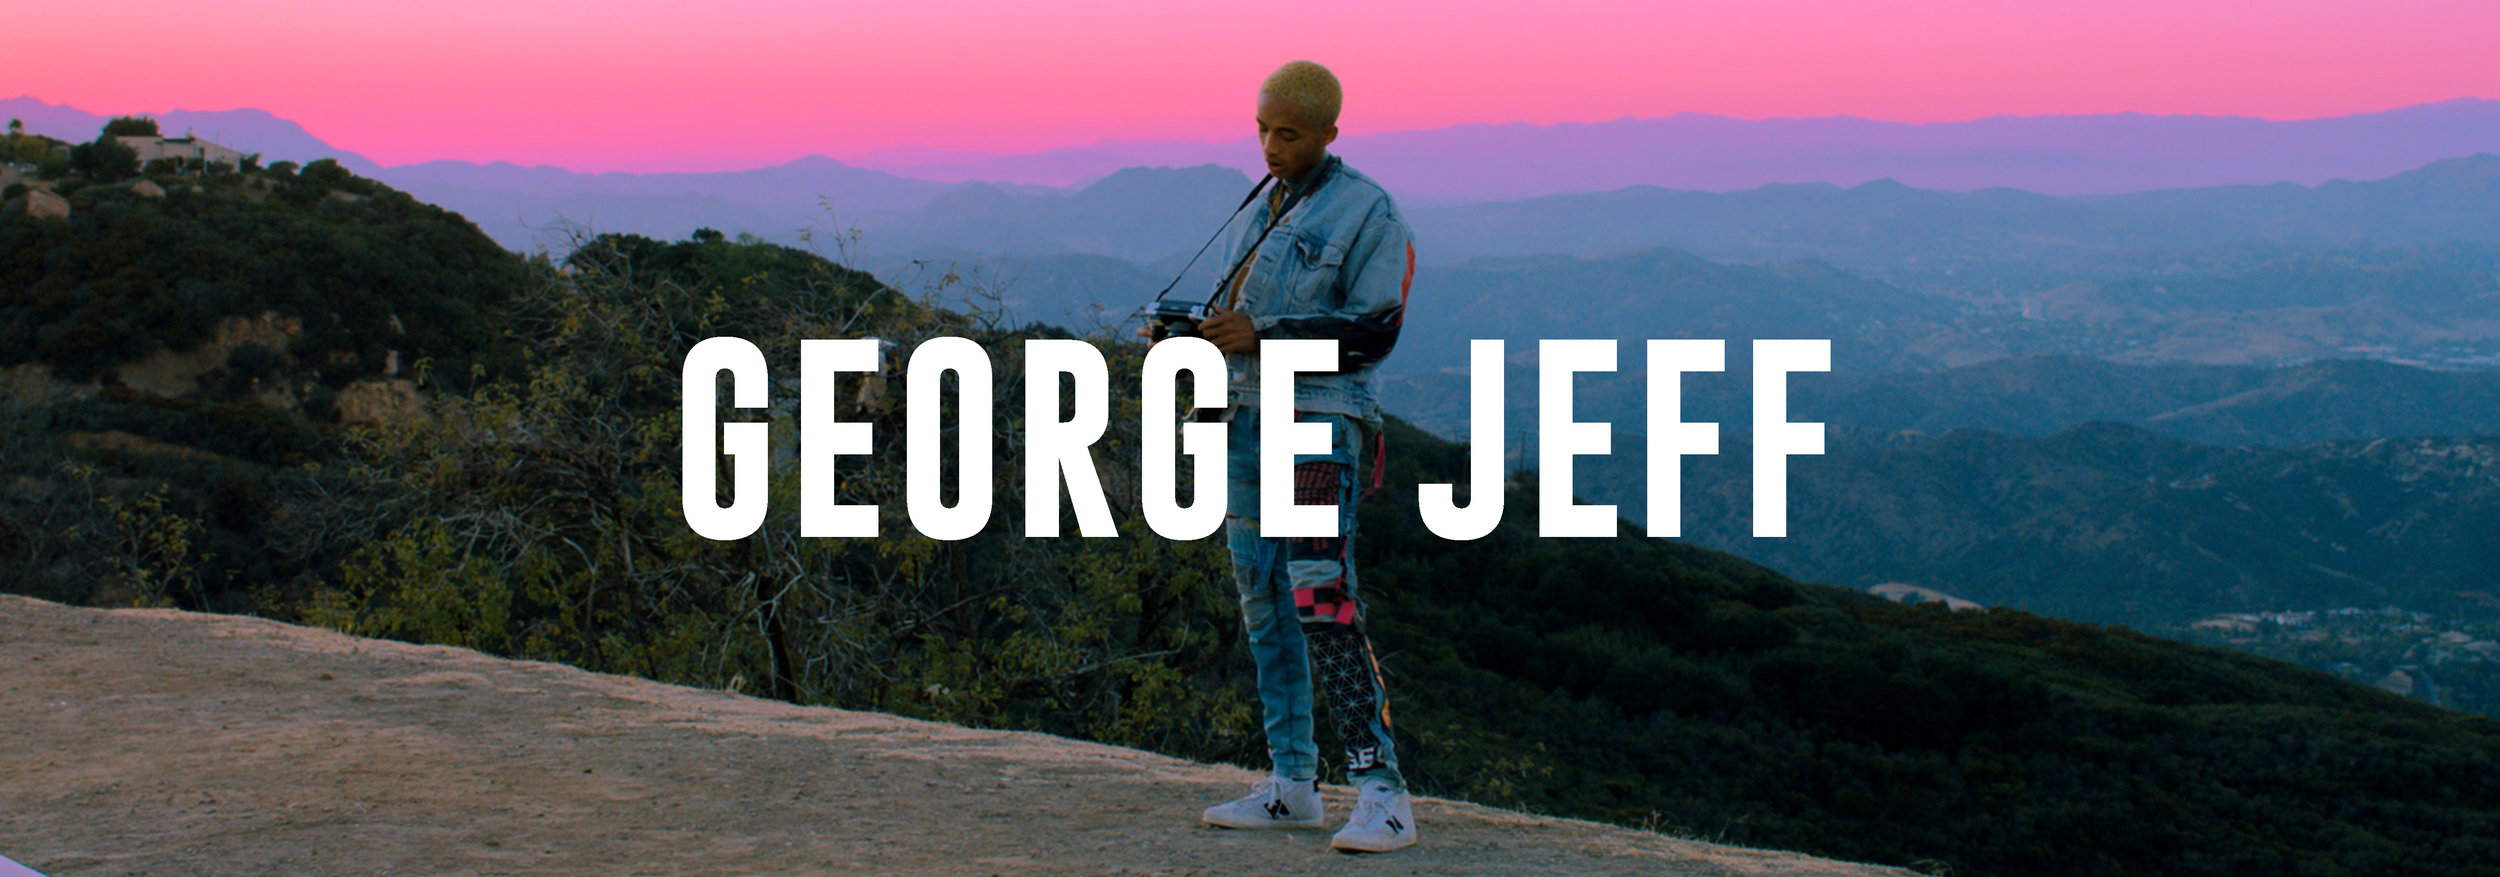 GEORGE_JEFF_TEMPLATE-01.jpg